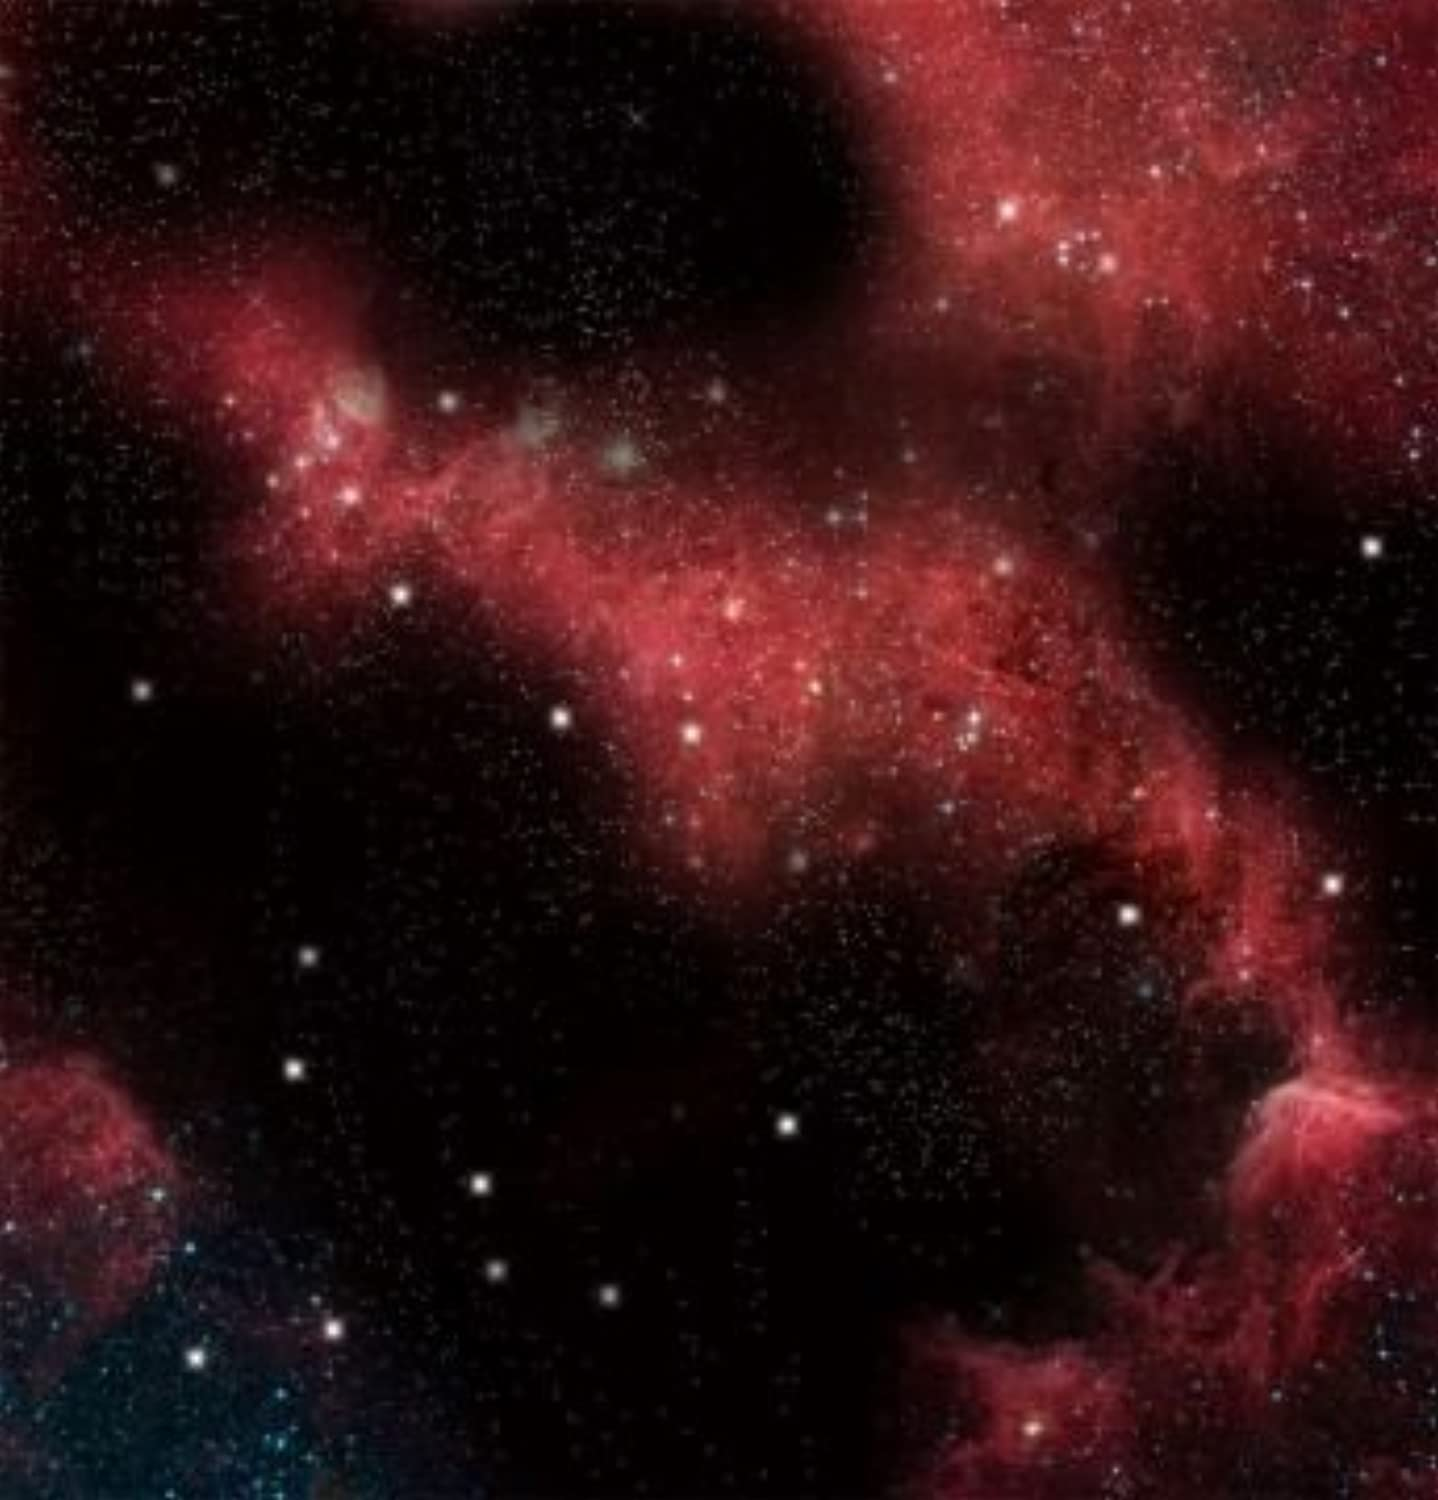 Crimson Gas Cloud Space Mat, 36 x 36 by Battlefront Miniature